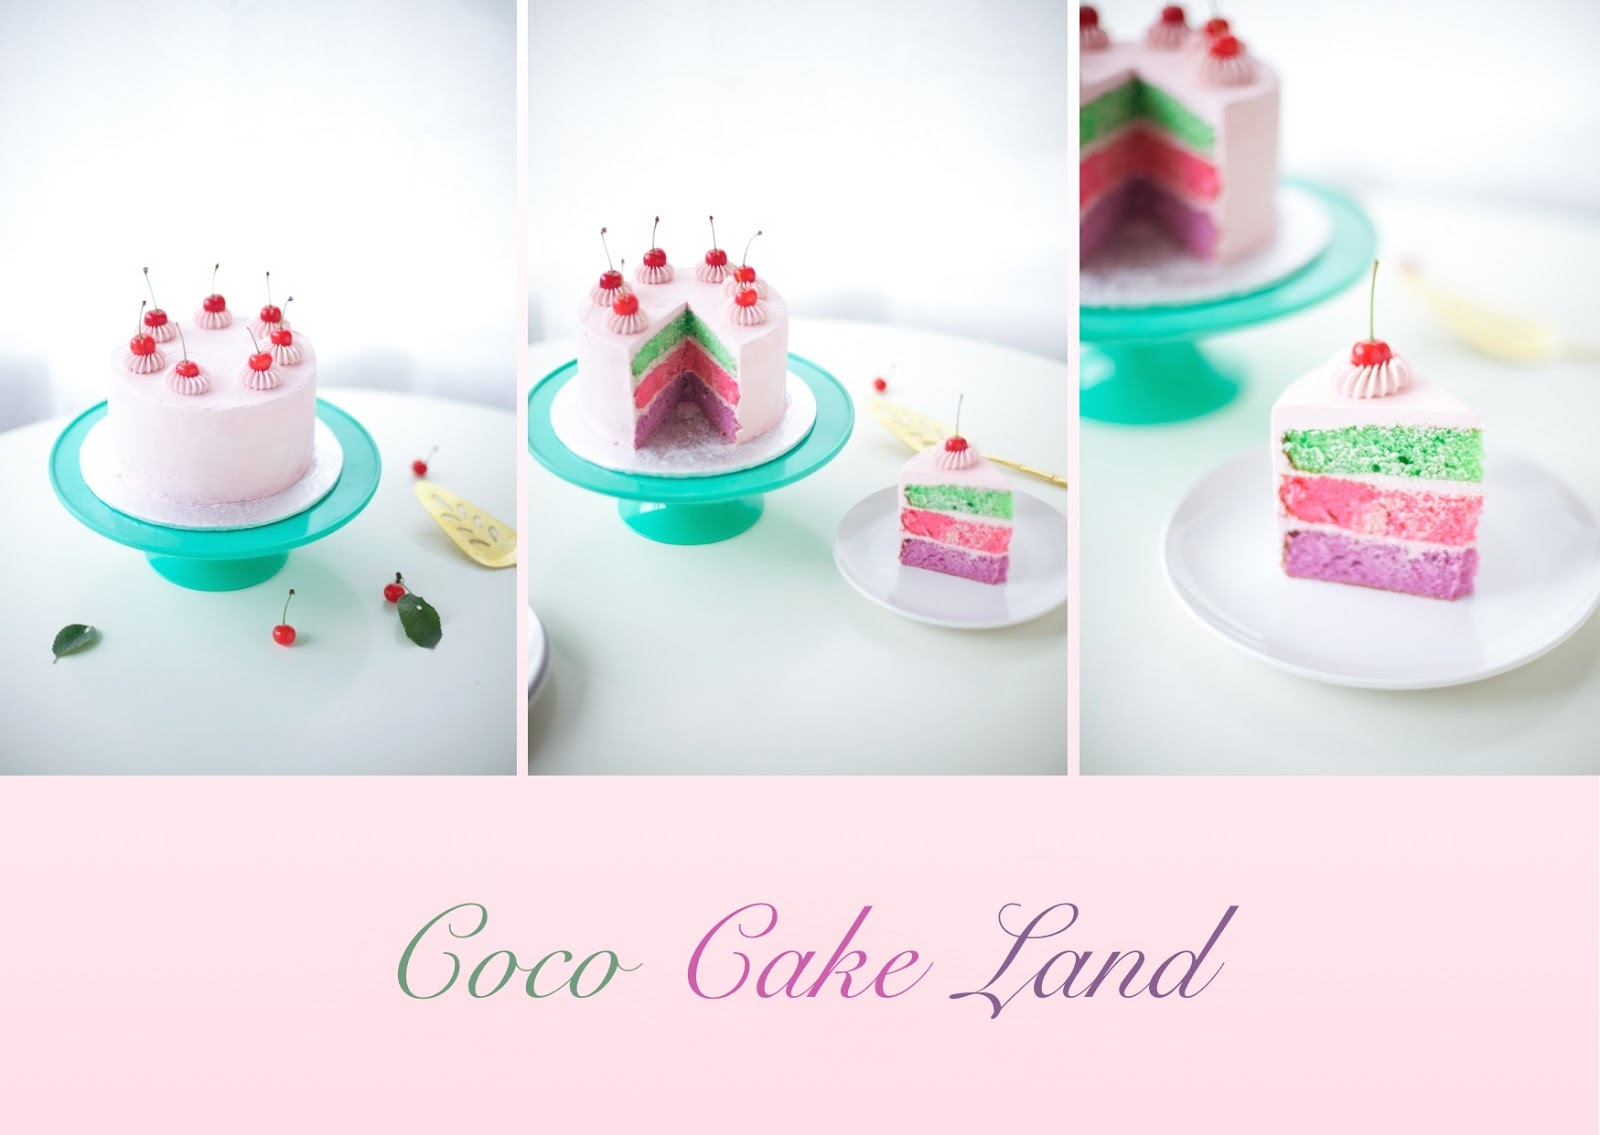 Good Things by David Coco Cake Land